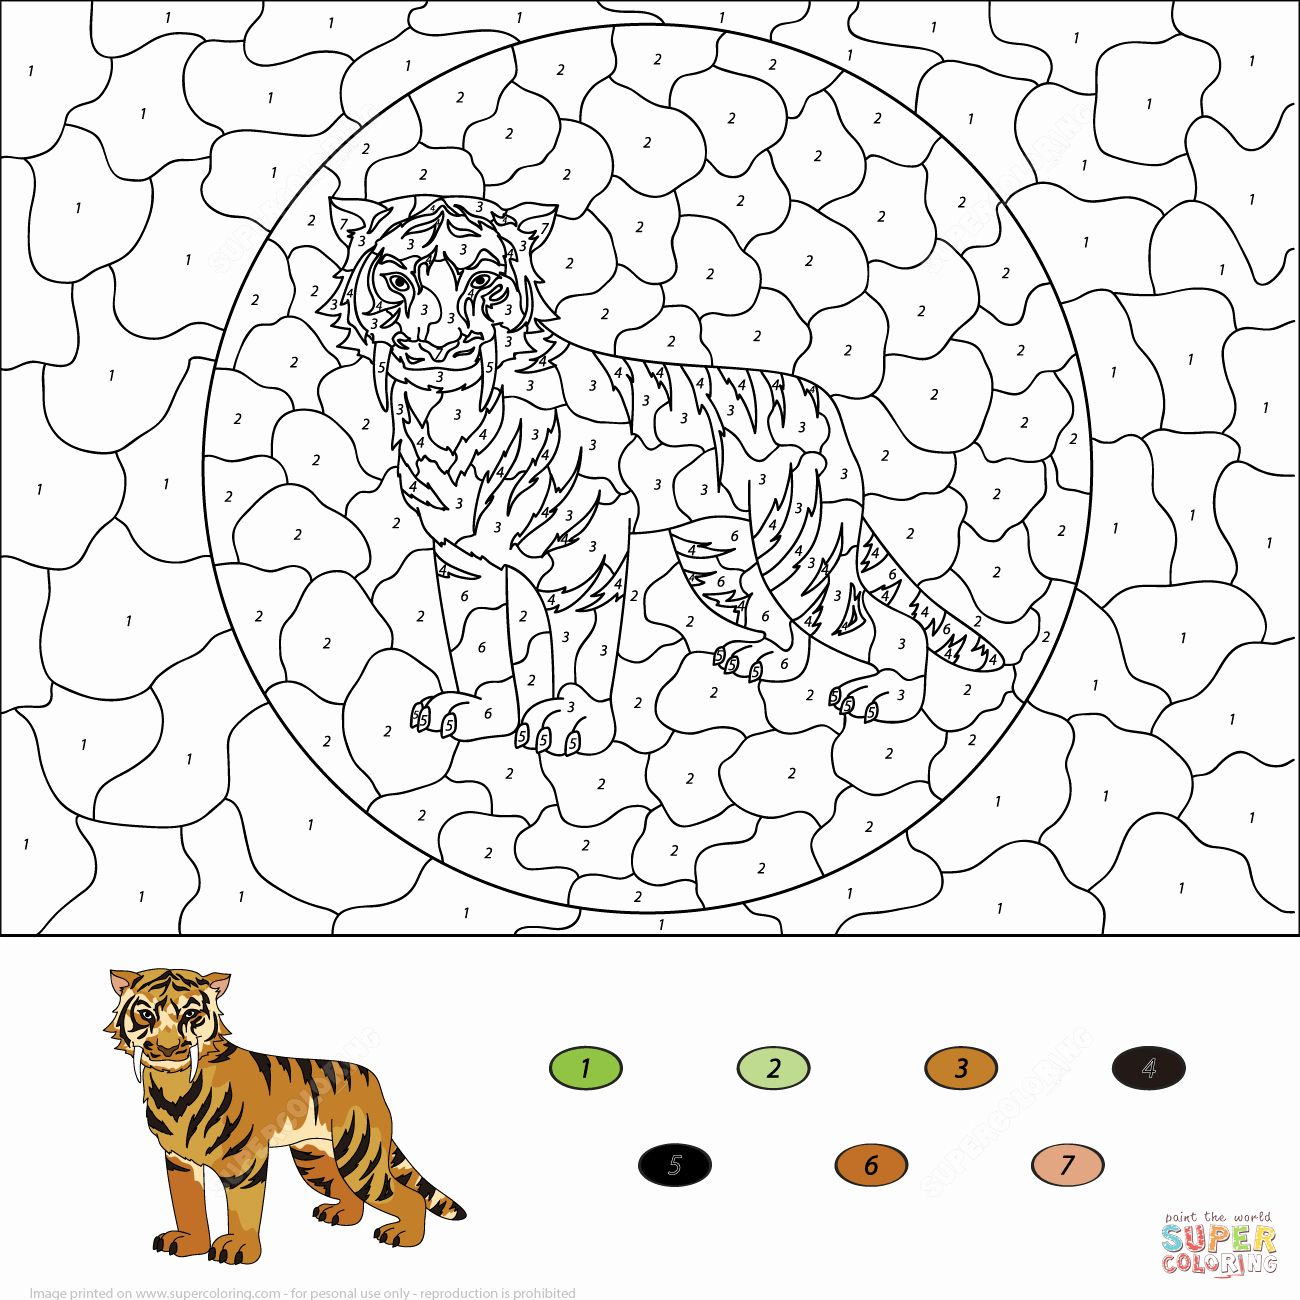 Saber Tooth Tiger Coloring Page Best Of Saber Tooth Tiger Coloring Pages Free Printable Coloring Pages Animal Coloring Pages Valentines Day Coloring Page